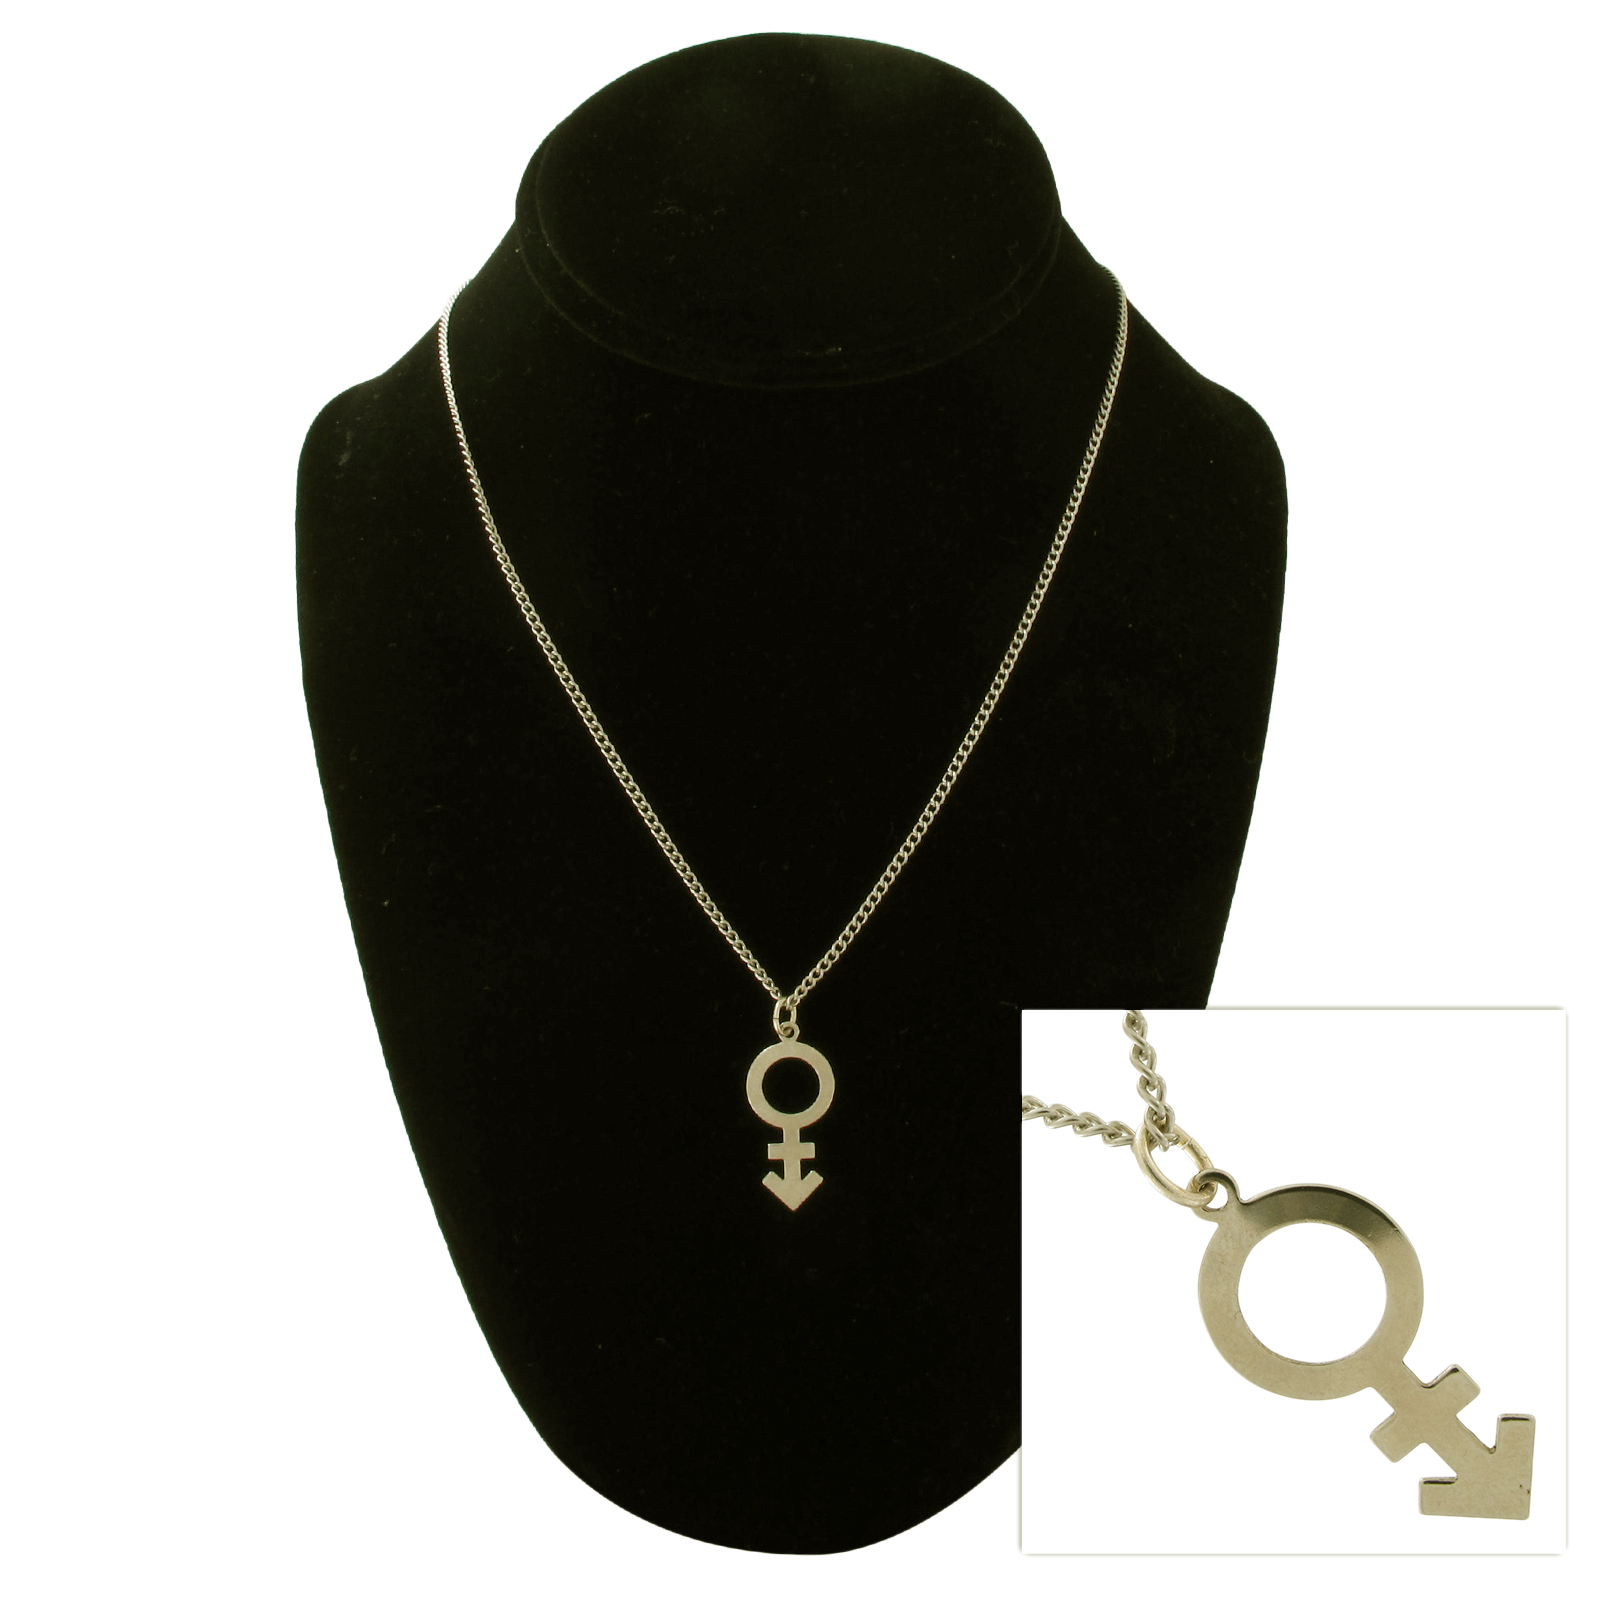 USA Made Gold Tone LGBT LGBTQ Transgender Symbol  Pendant Necklace